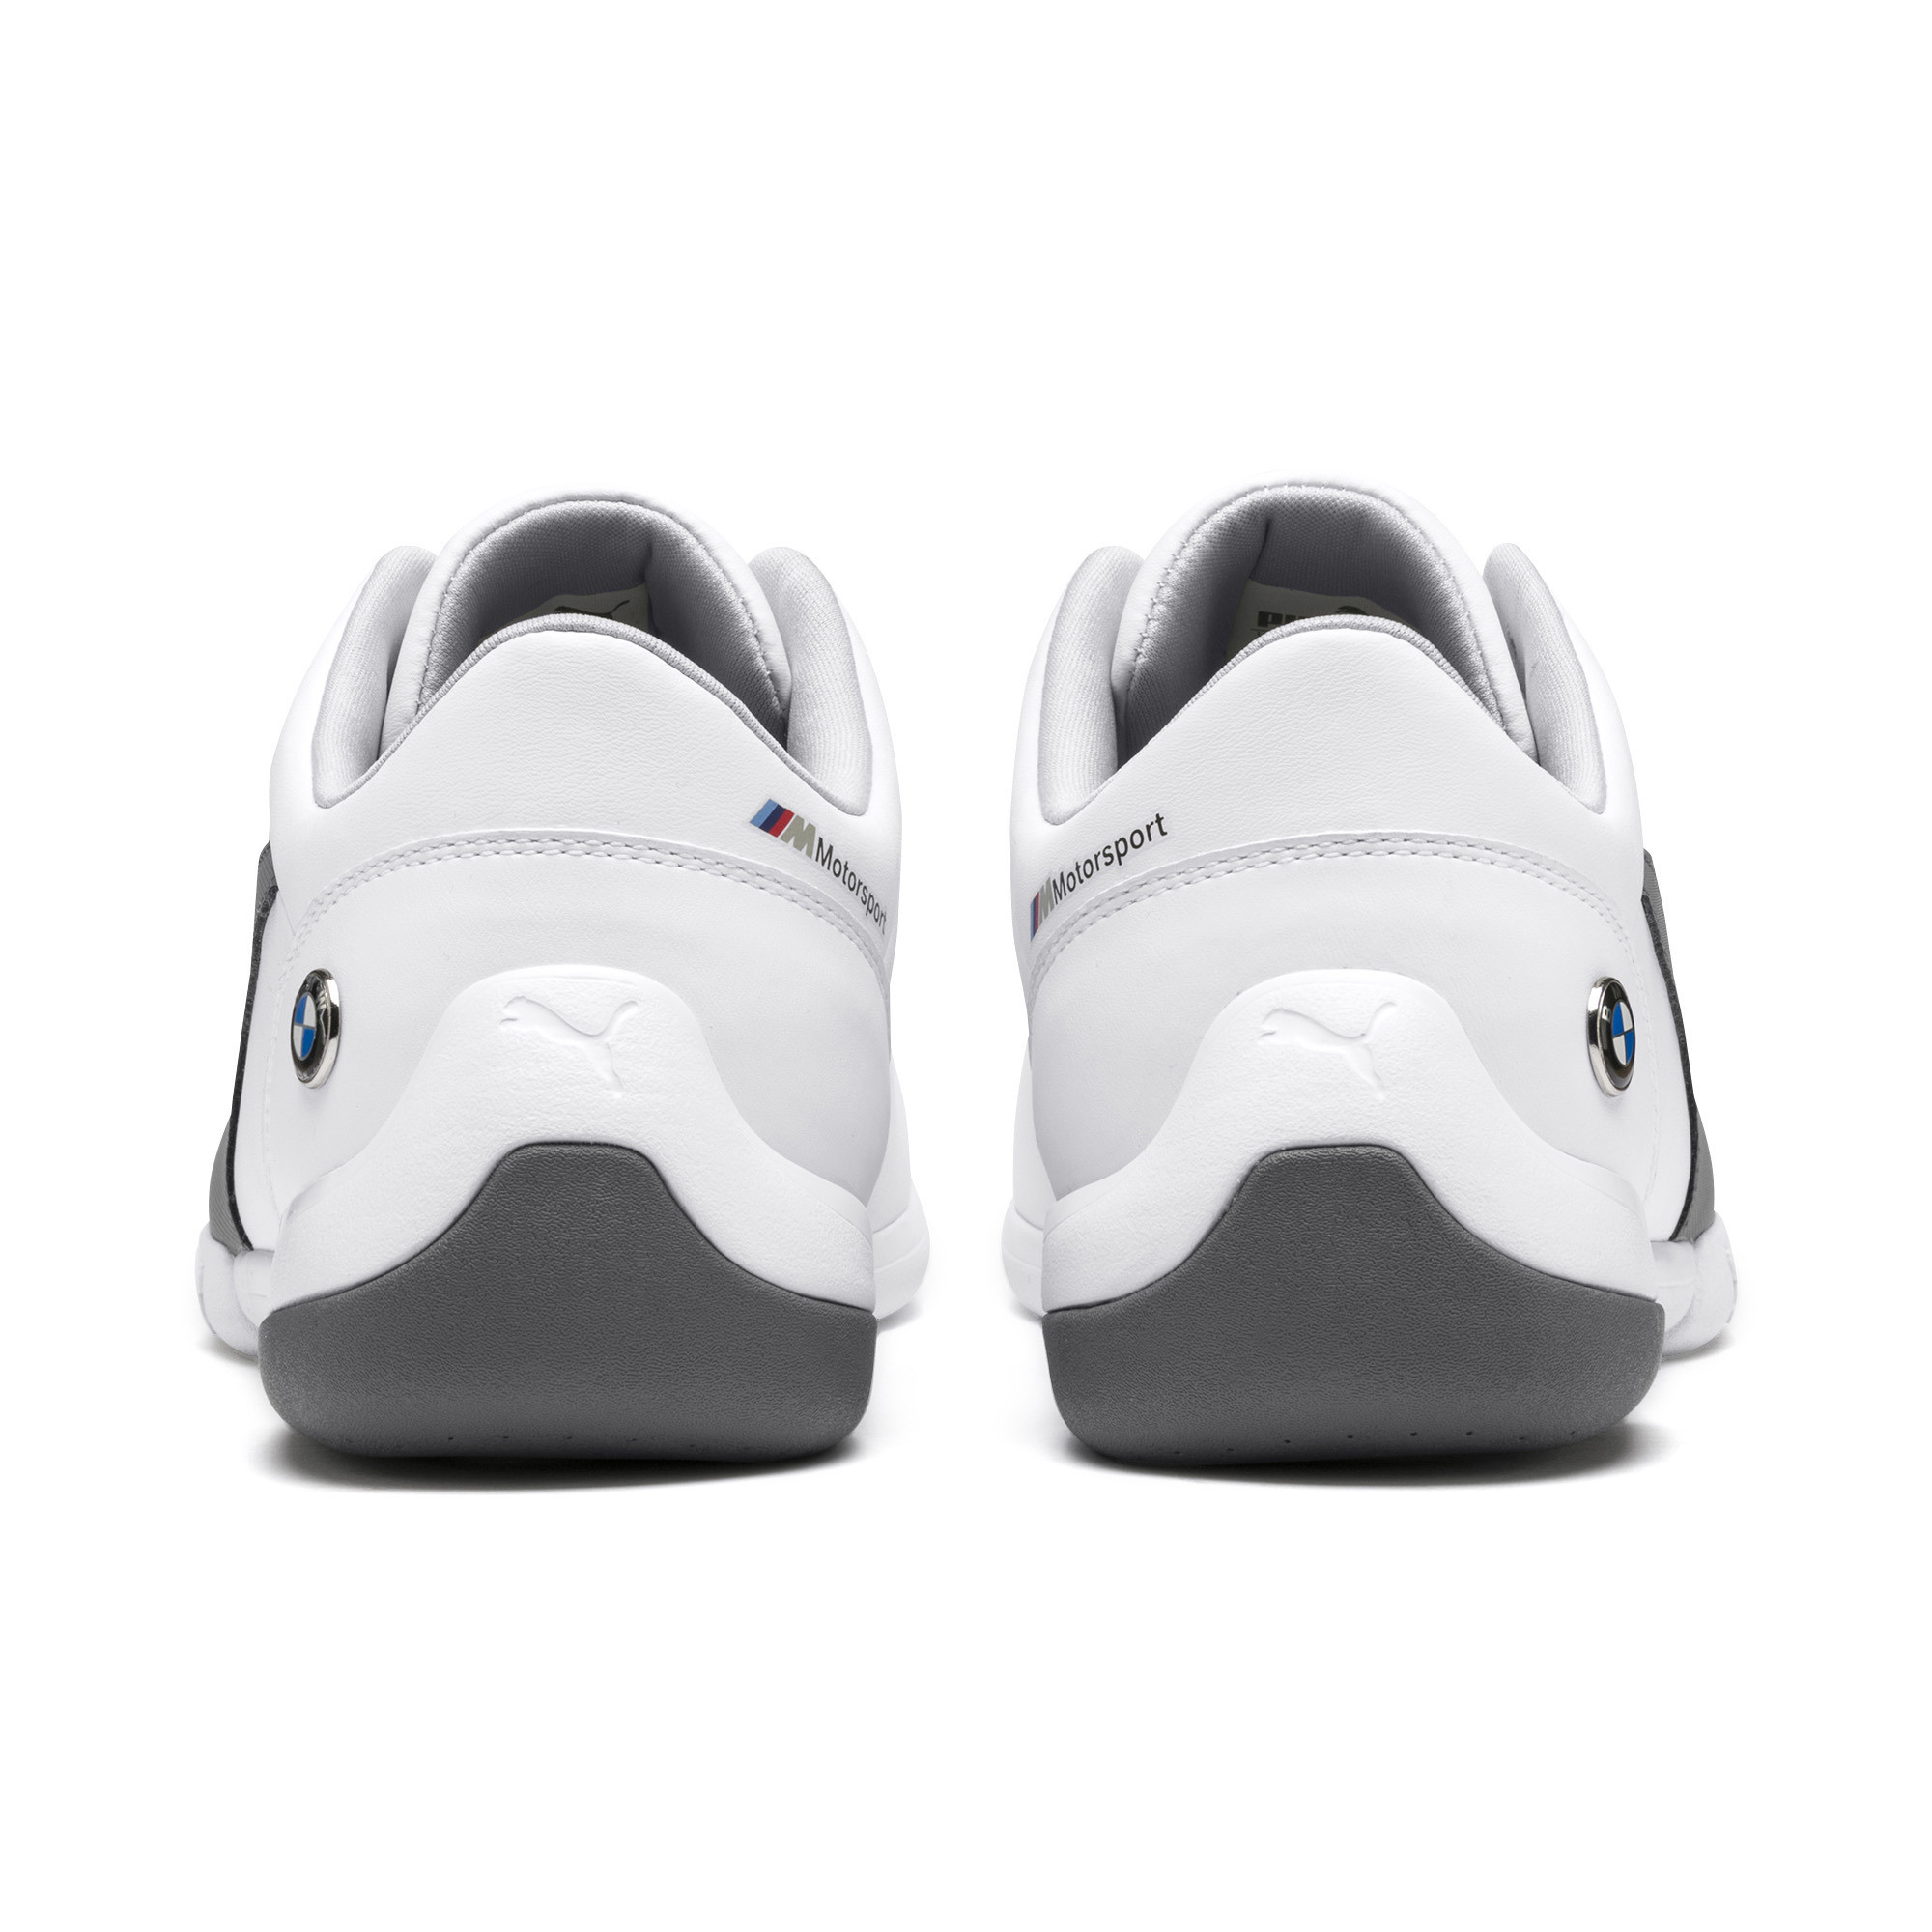 PUMA-BMW-M-Motorsport-Kart-Cat-III-Shoes-Men-Shoe-Auto thumbnail 19